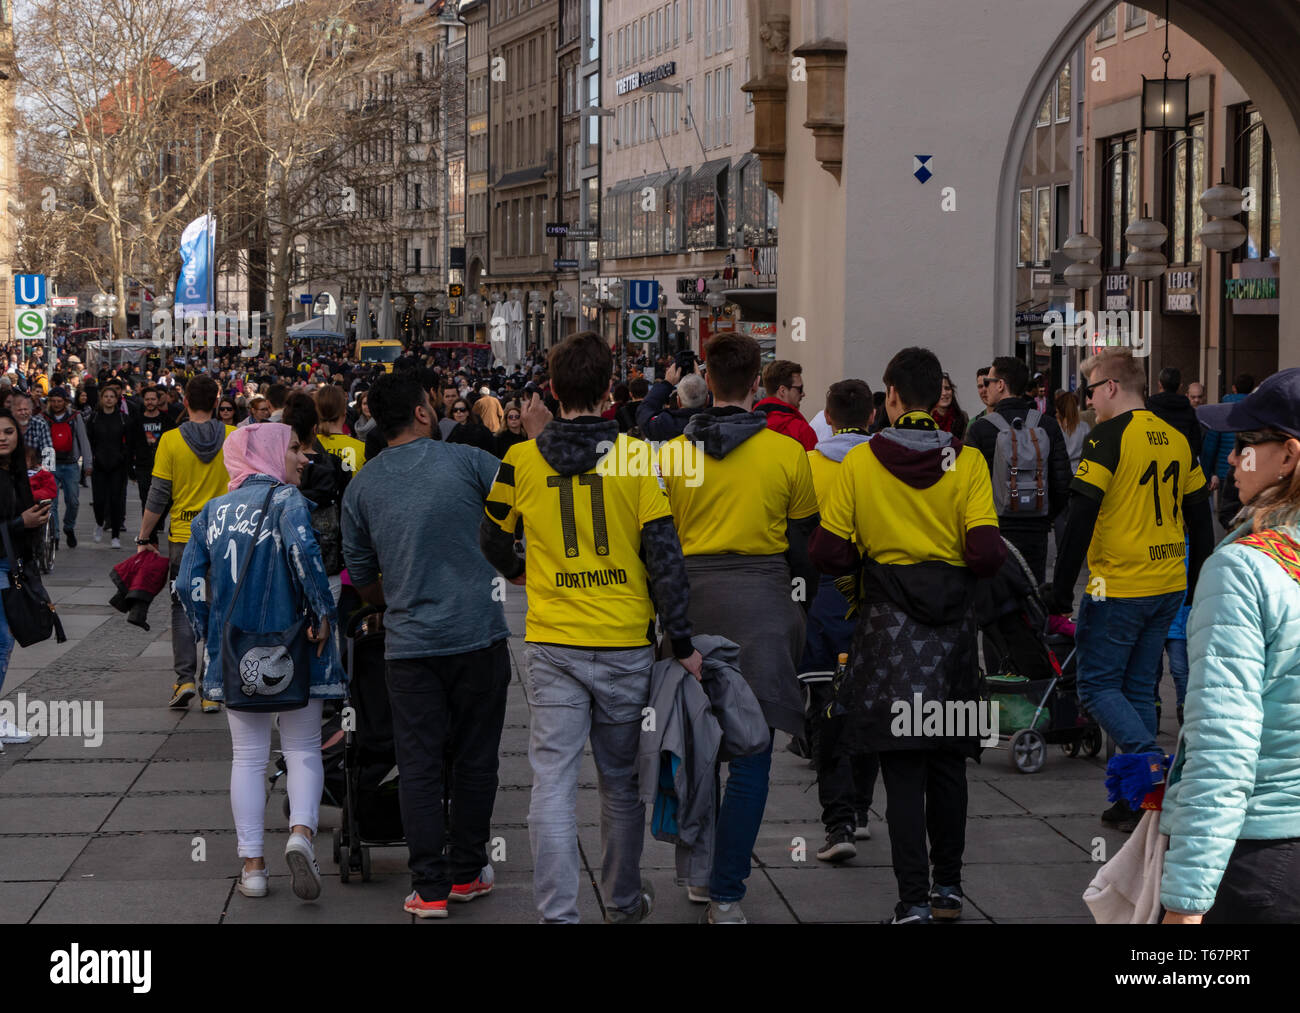 STACHUS, MUENCHEN, APRIL 6, 2019: bvb fans on the way to a public viewing location for the soccer game fc bayern munich vs bvb - Stock Image